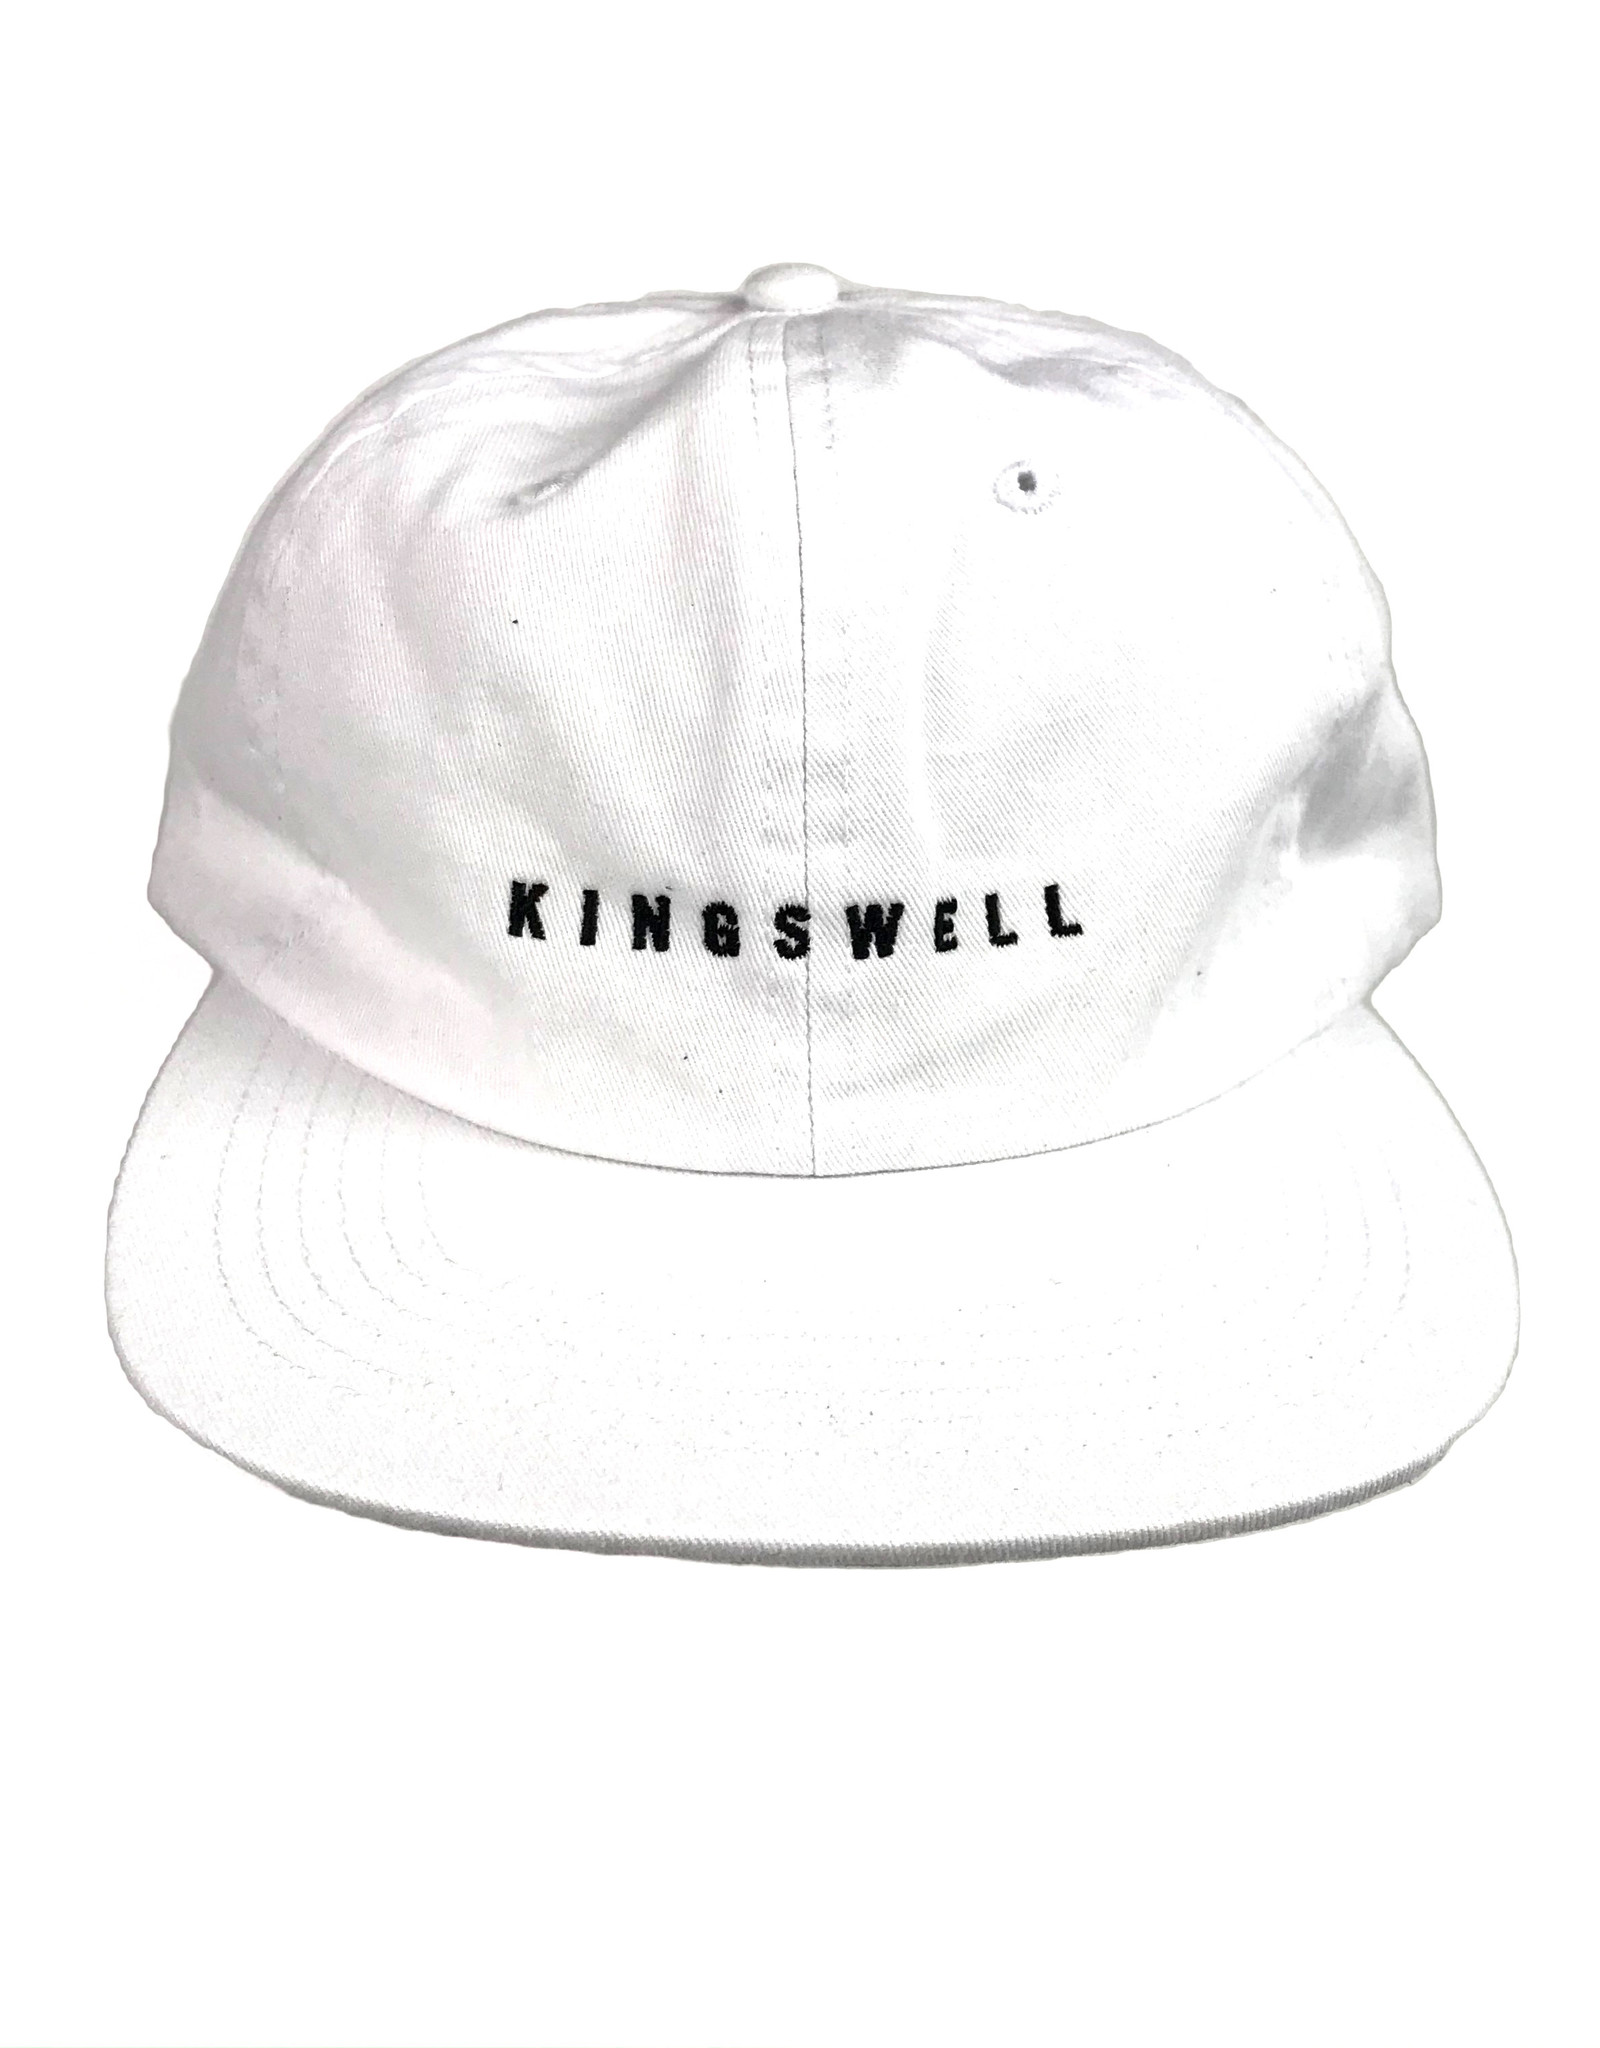 KINGSWELL KINGSWELL LOGO HAT - WHITE